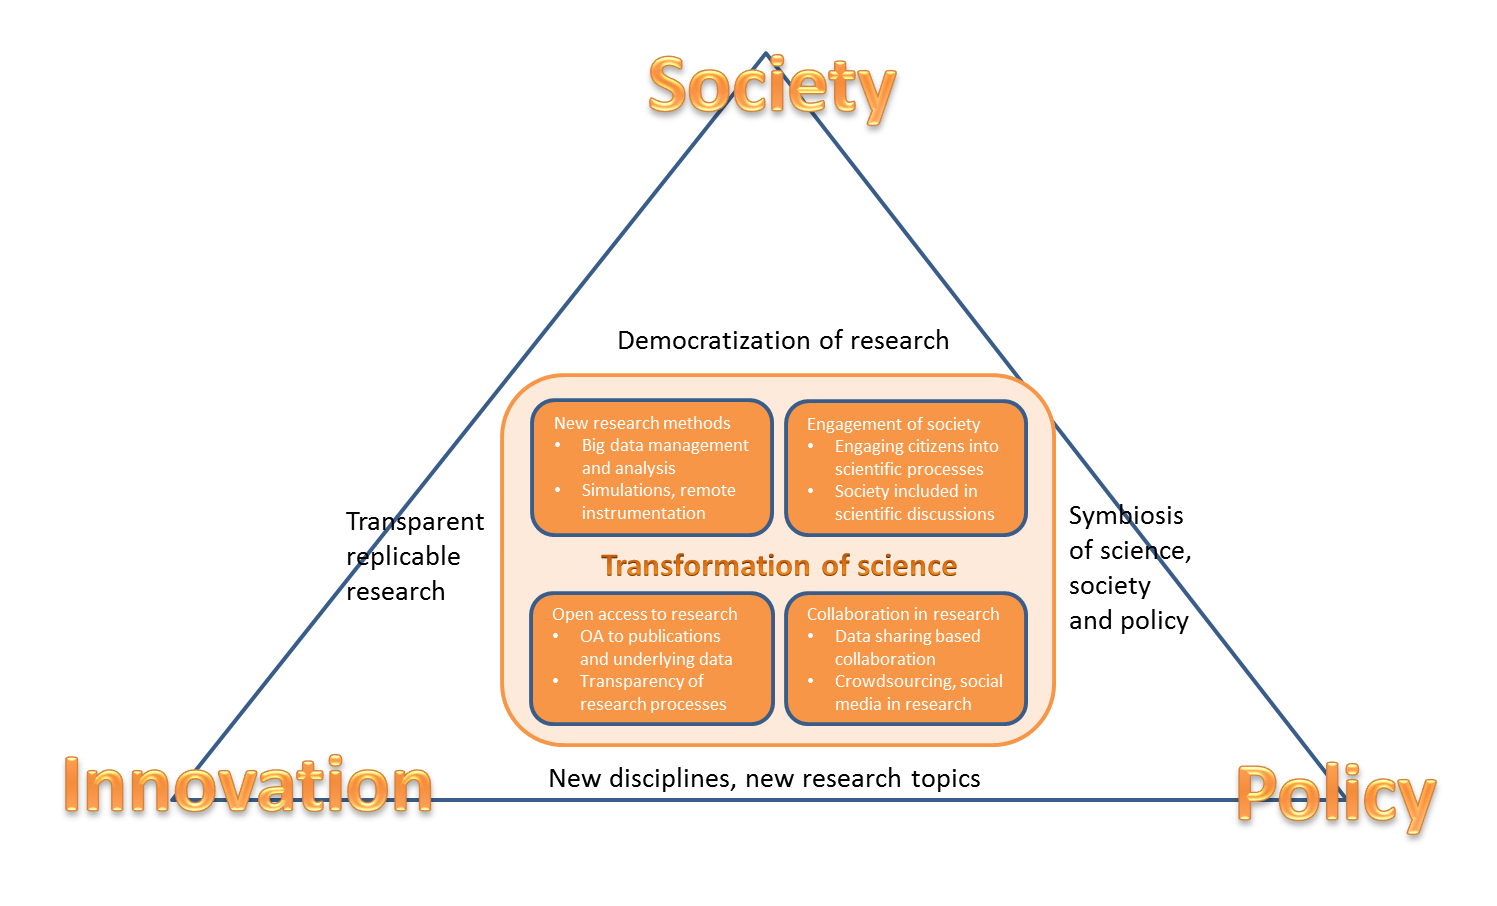 Transformation of science